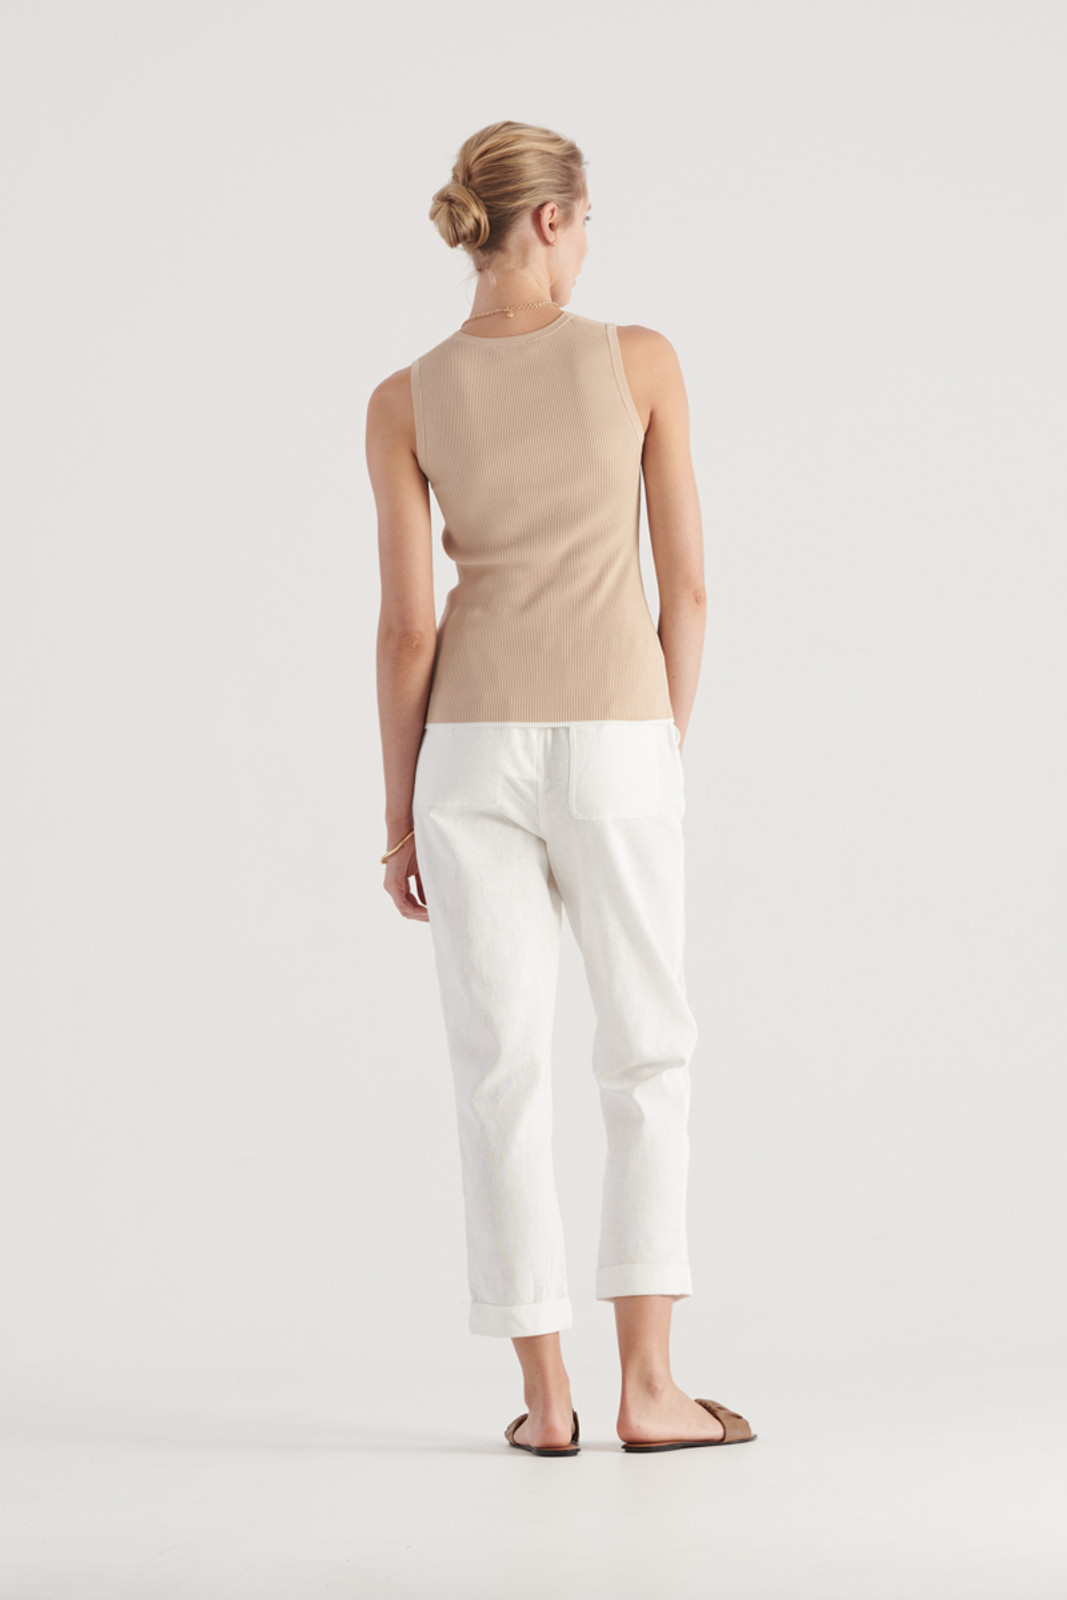 Elka Collective WomensTone Knit Top Sand  3